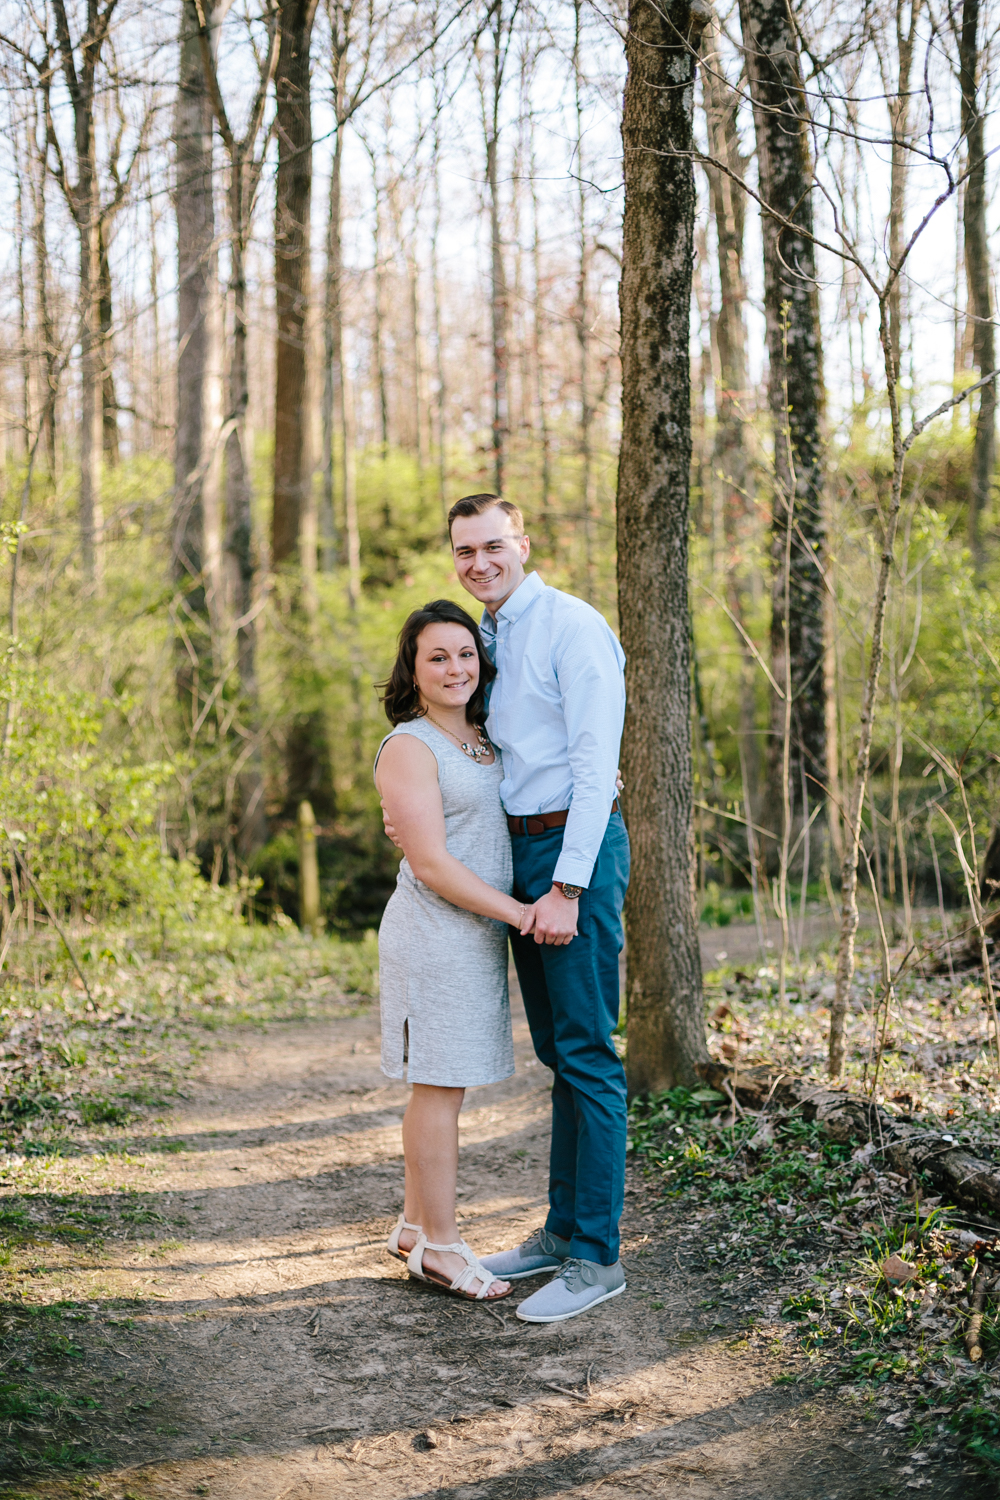 Adventure Filled Engagement Session by Portland, Oregon Wedding Photographer Corrie Mick Photography-27.jpg